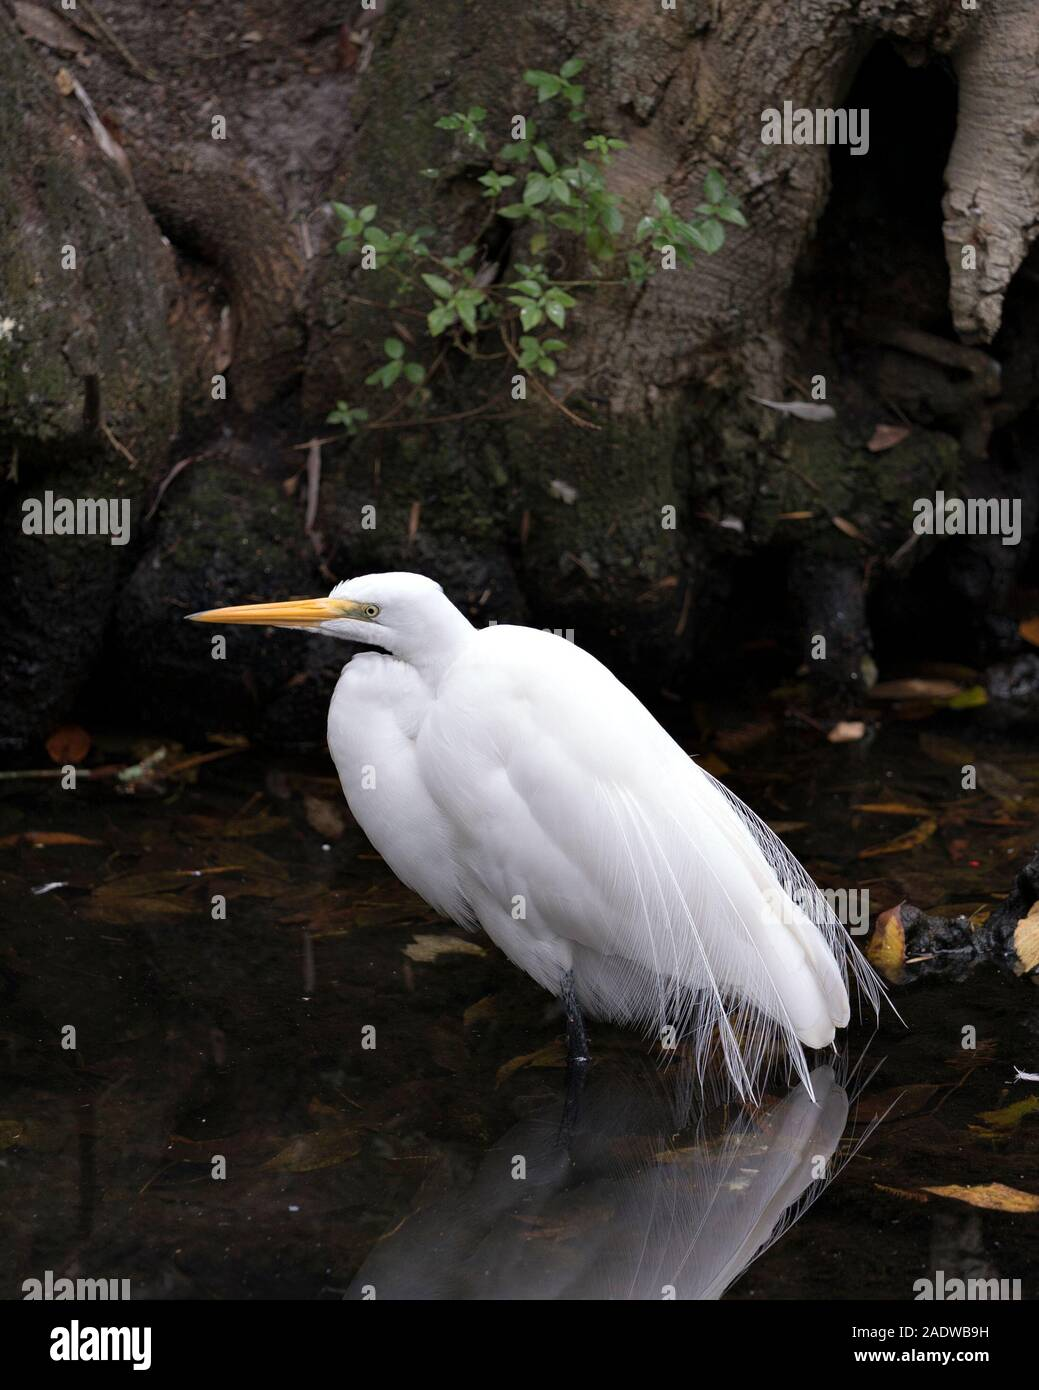 Great White Egret bird close-up profile view in the water with reflection displaying  white plumage with a foliage background. Stock Photo